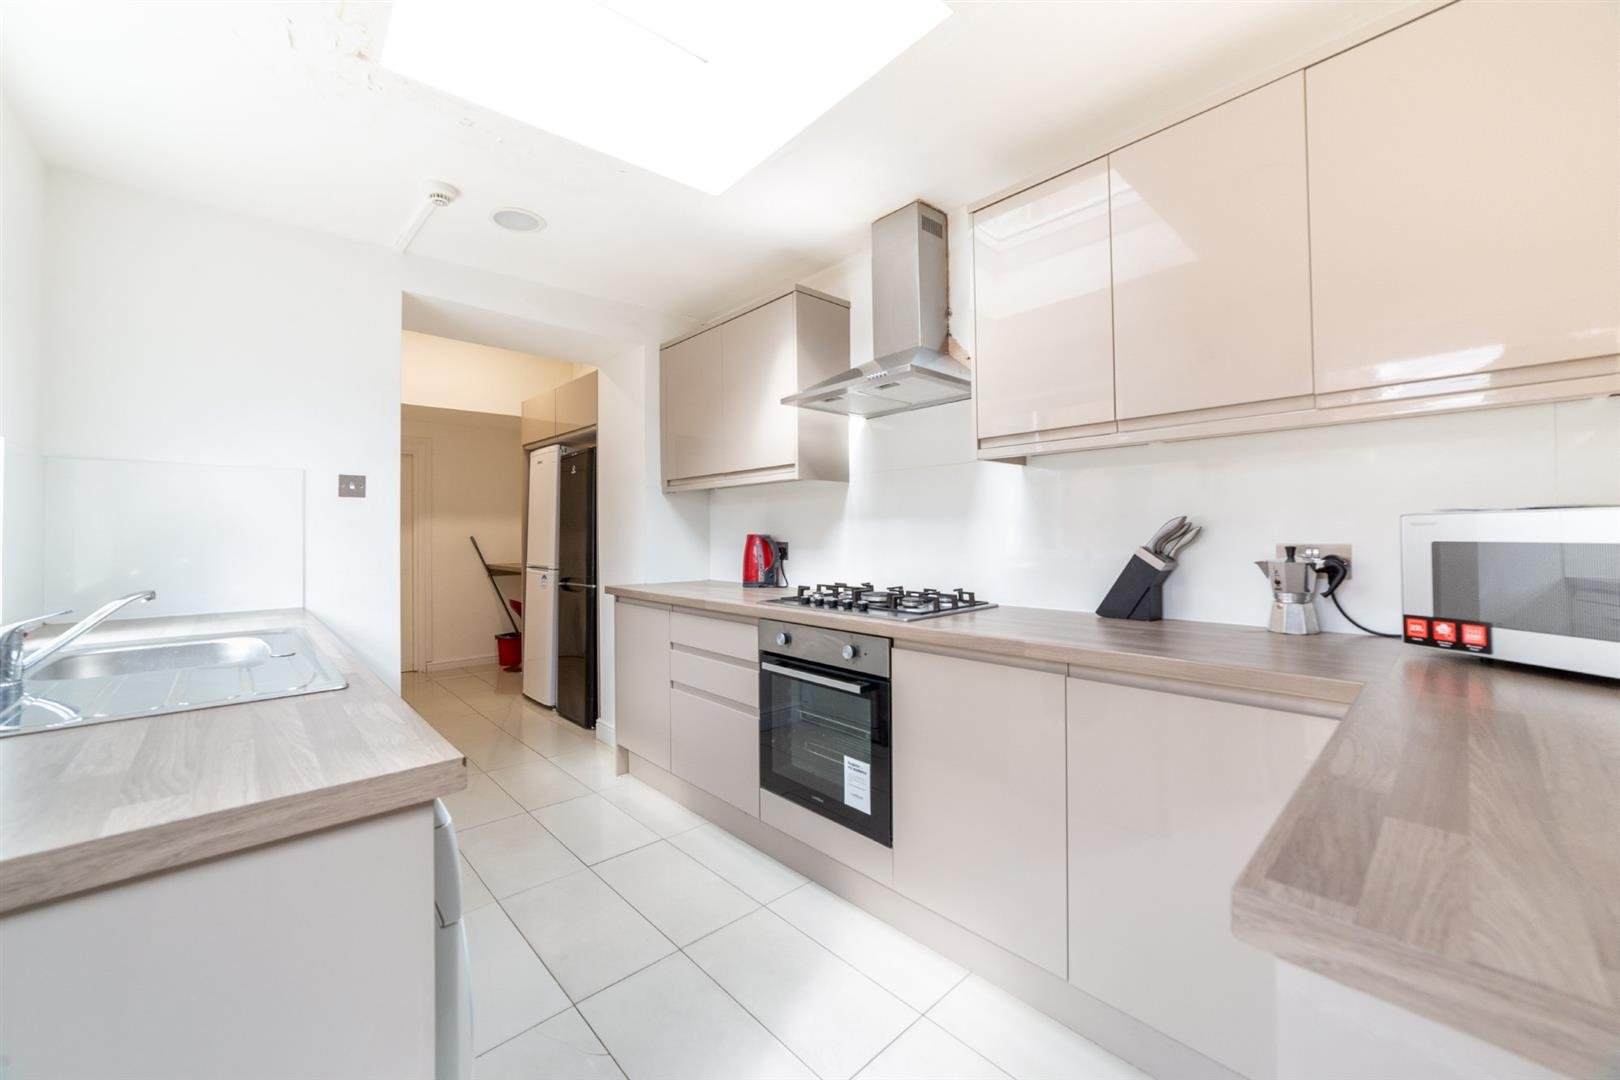 7 bed terraced house to rent in Newcastle Upon Tyne, NE2 3JT  - Property Image 5